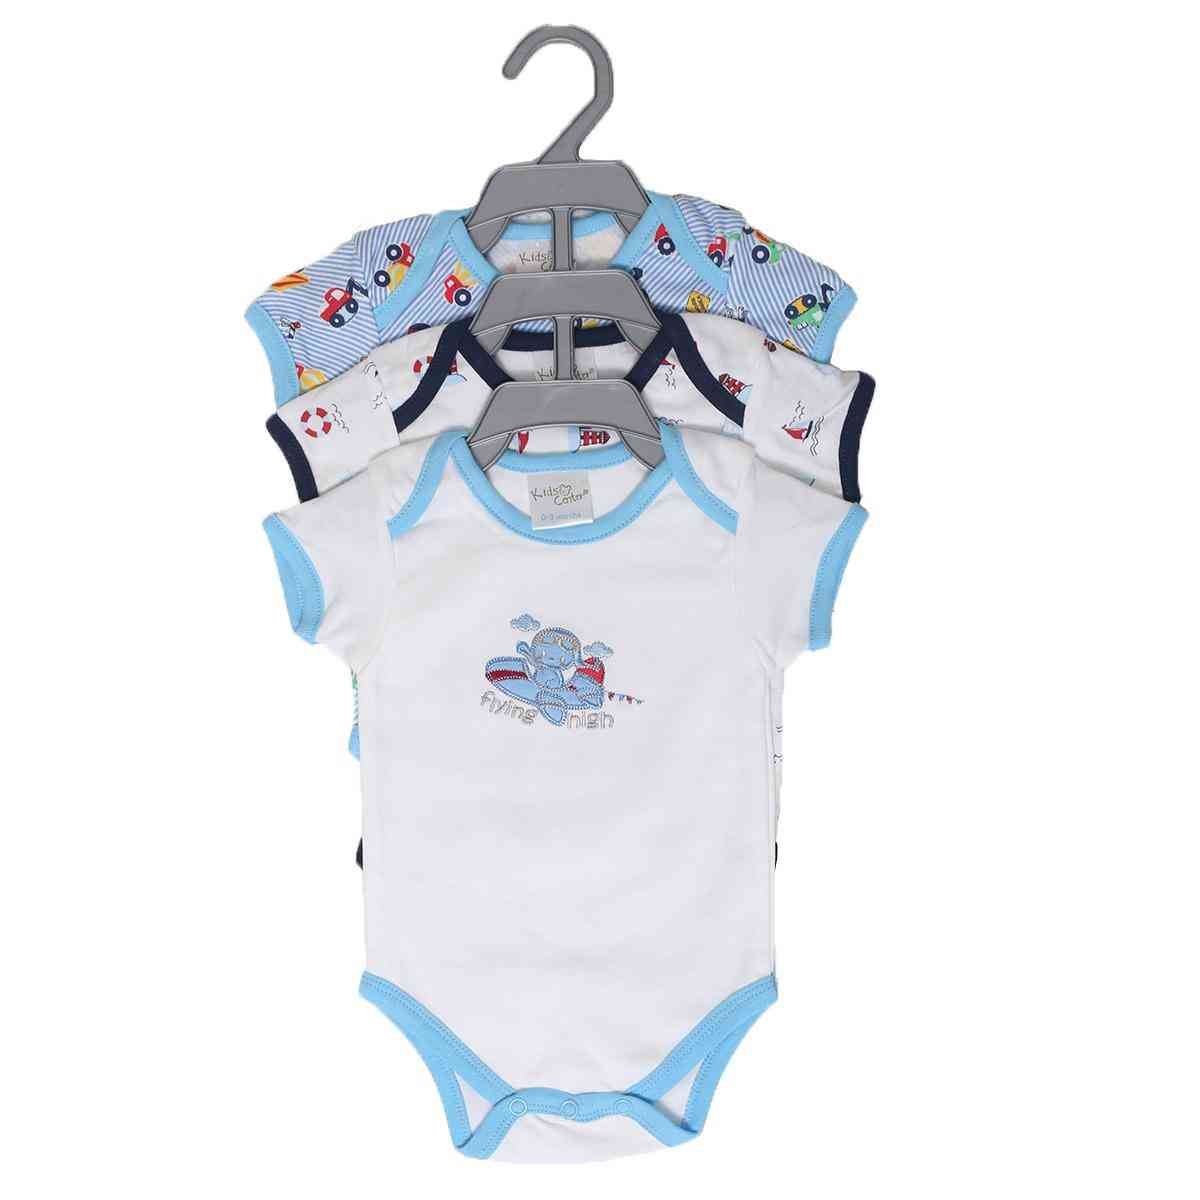 Newborn Babies Online Shopping Pack Of 3 Newborn Baby Romper Body Suit 100 Cotton Blue